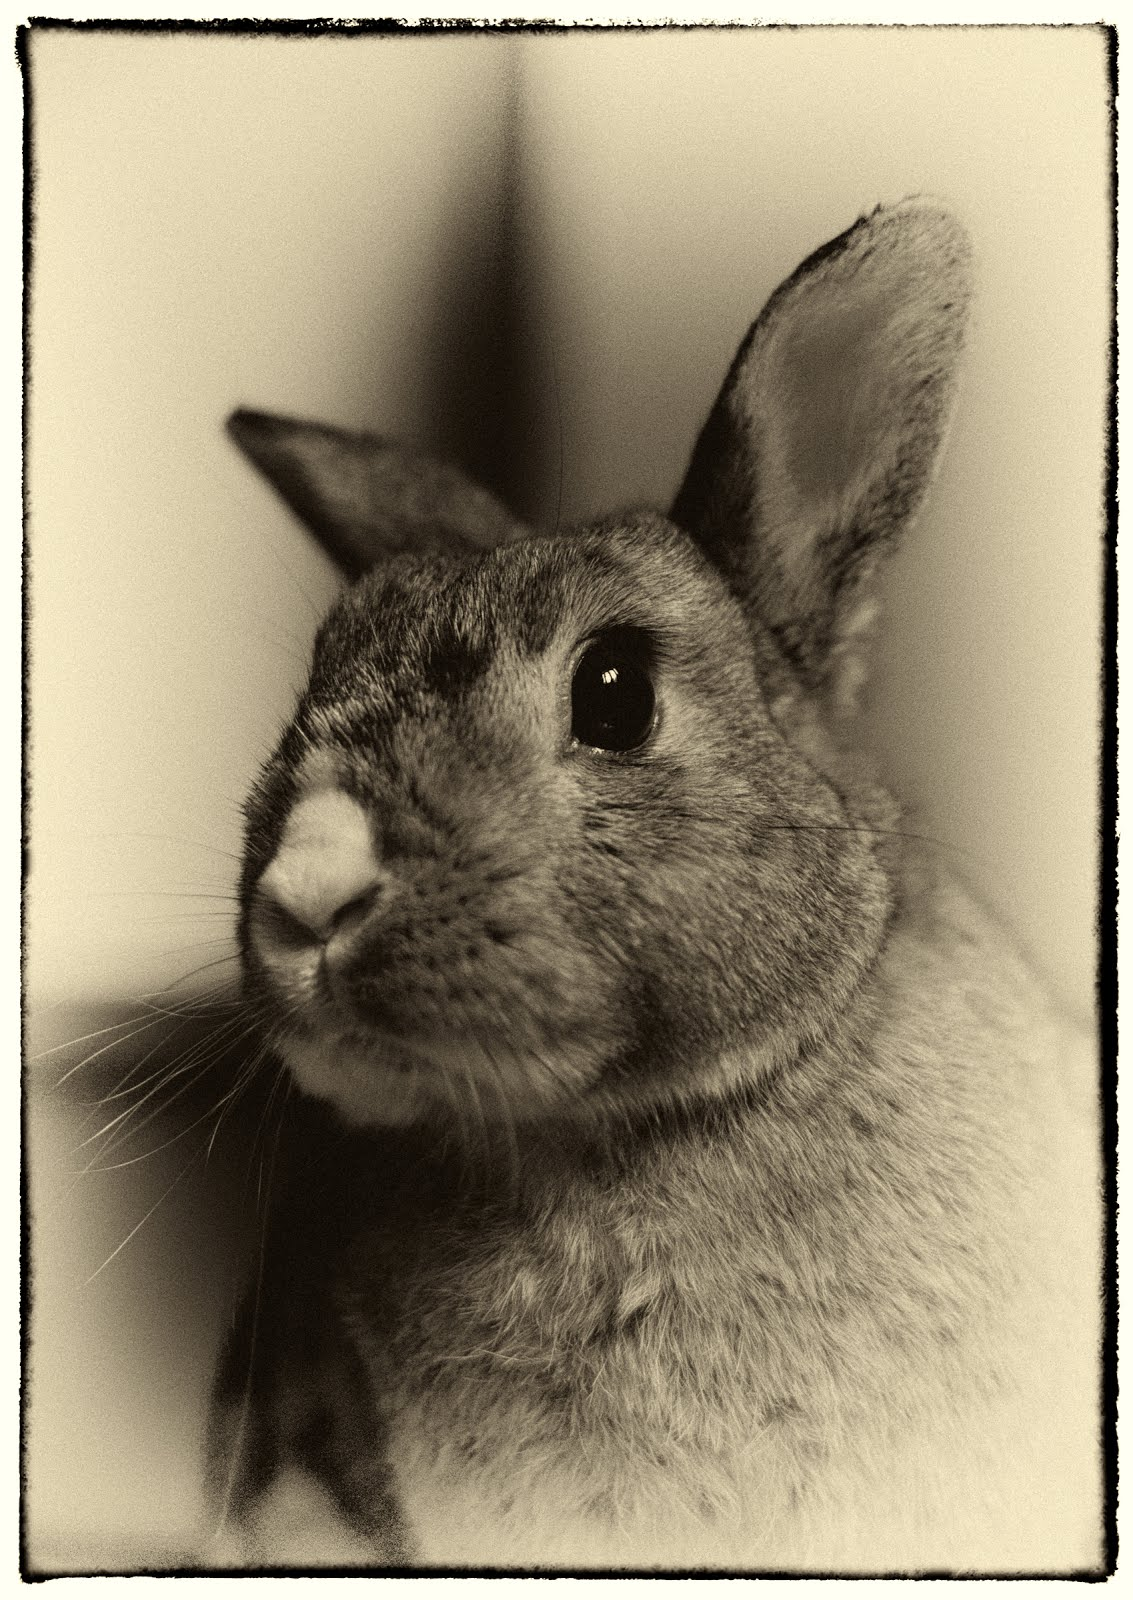 The Vintage Bunny